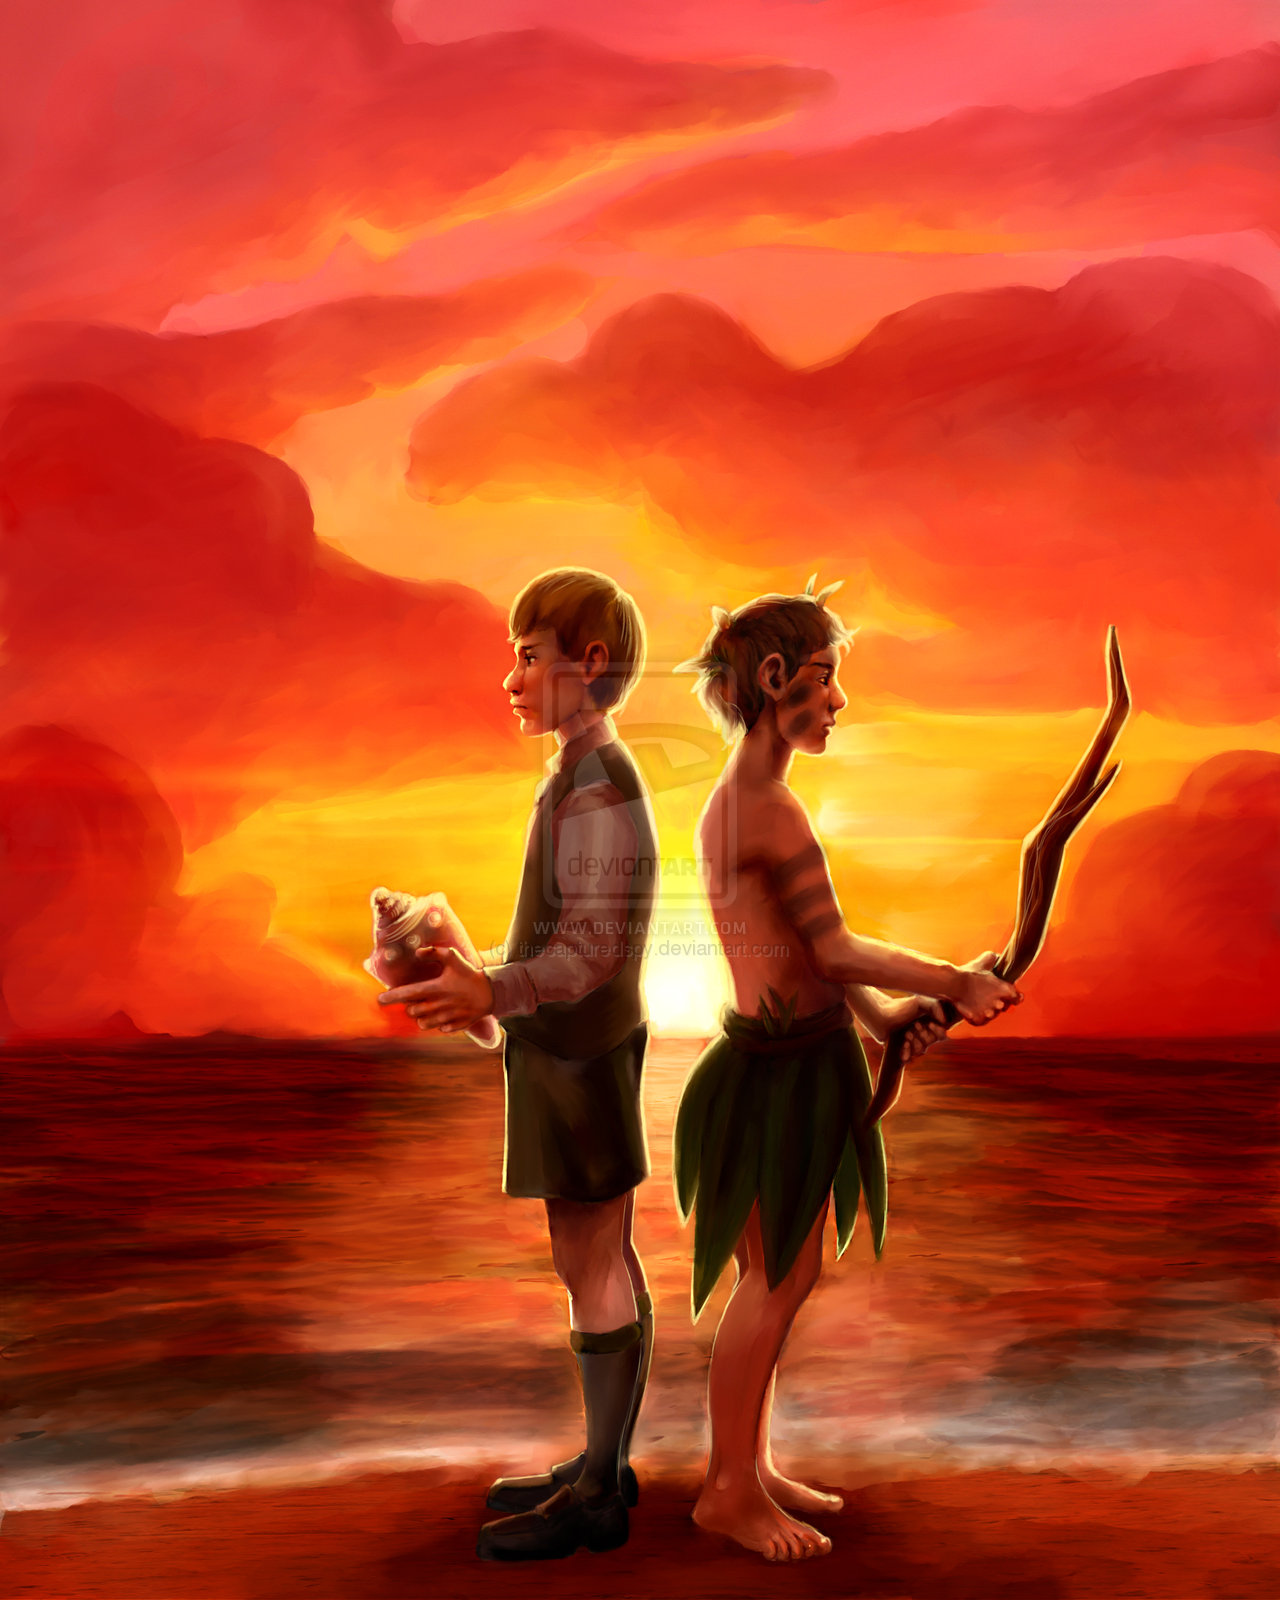 Essay: Lord Of The Flies, Comparison of Ralph and Jack